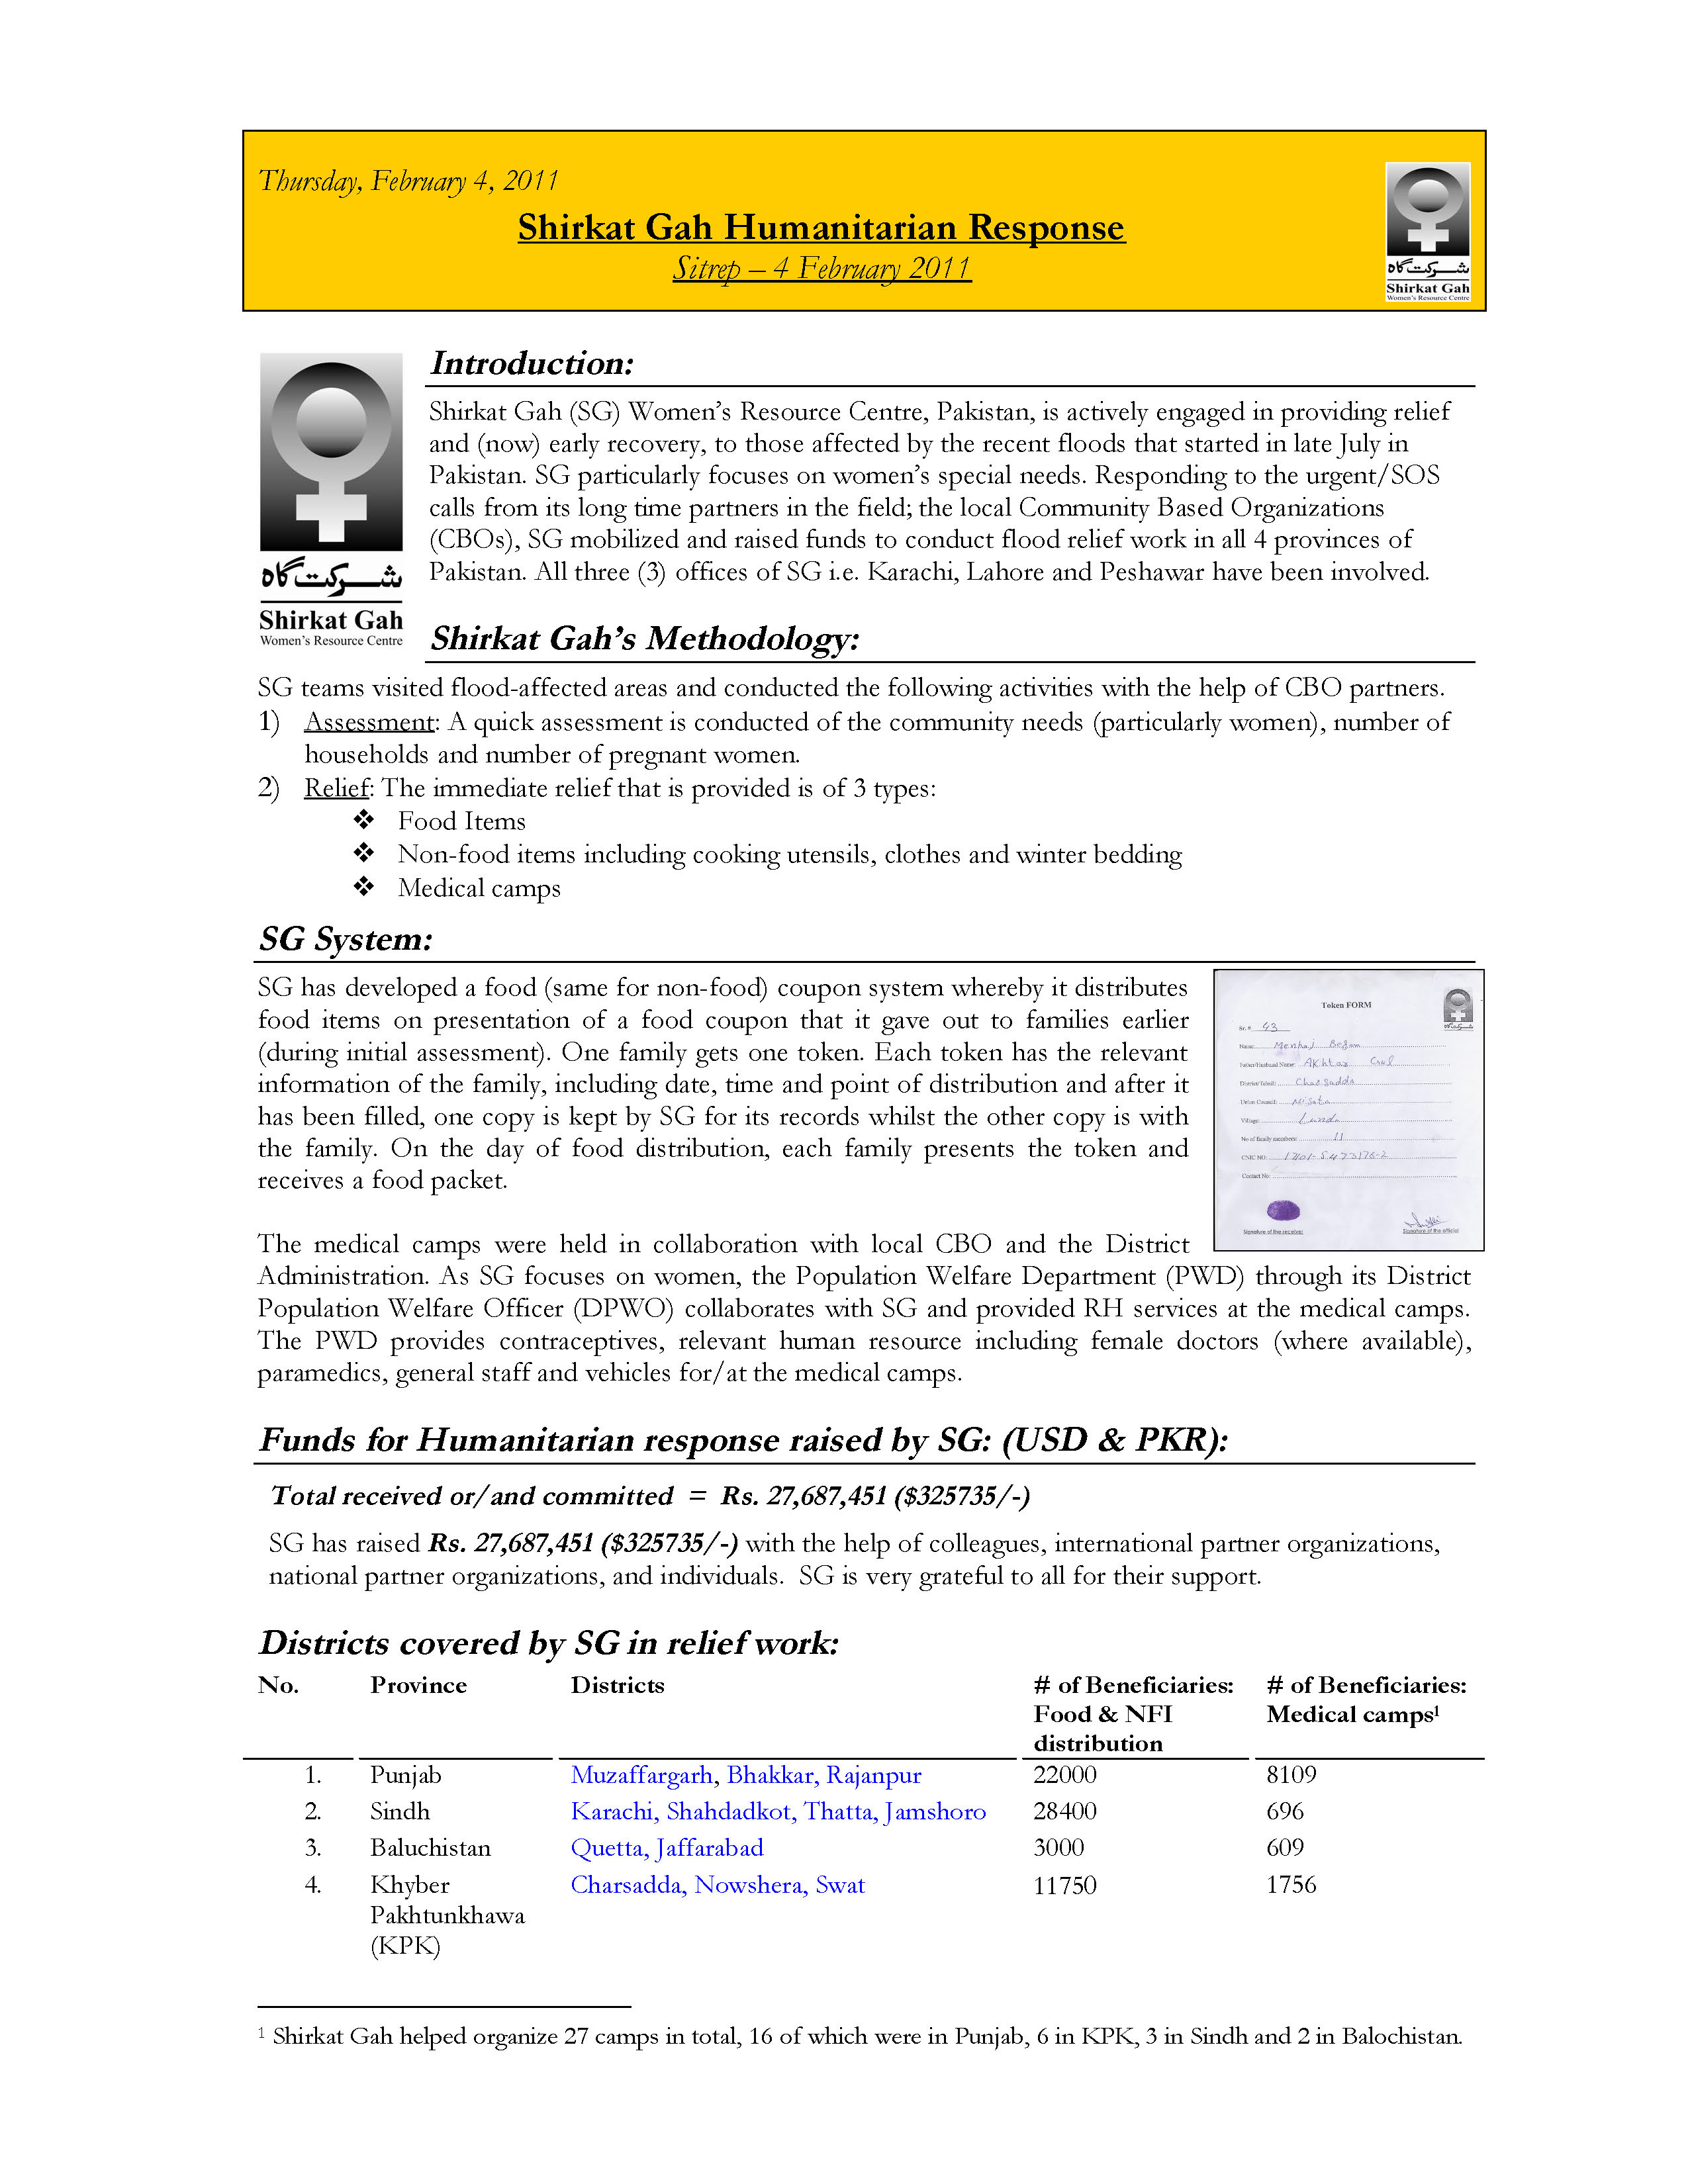 SG_sitrep_4_Feb_2011.pdfNew_Page_01